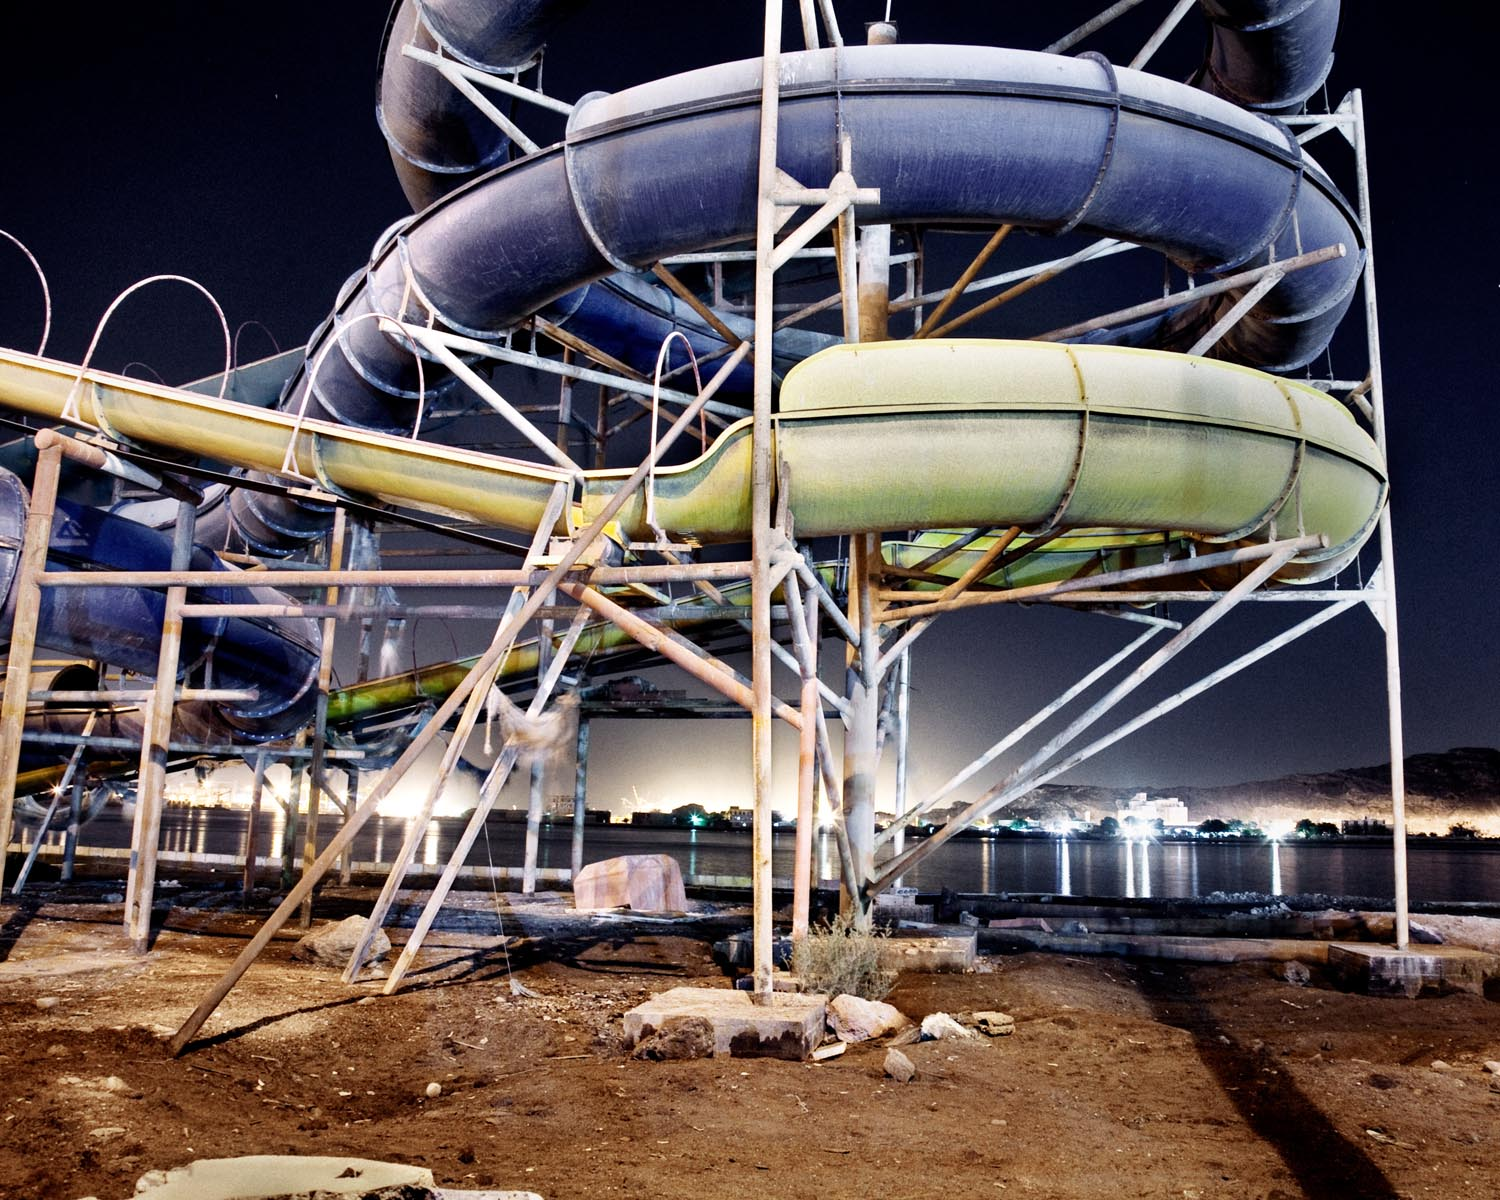 An abandoned water park on the Gulf of Aden. September 2010.